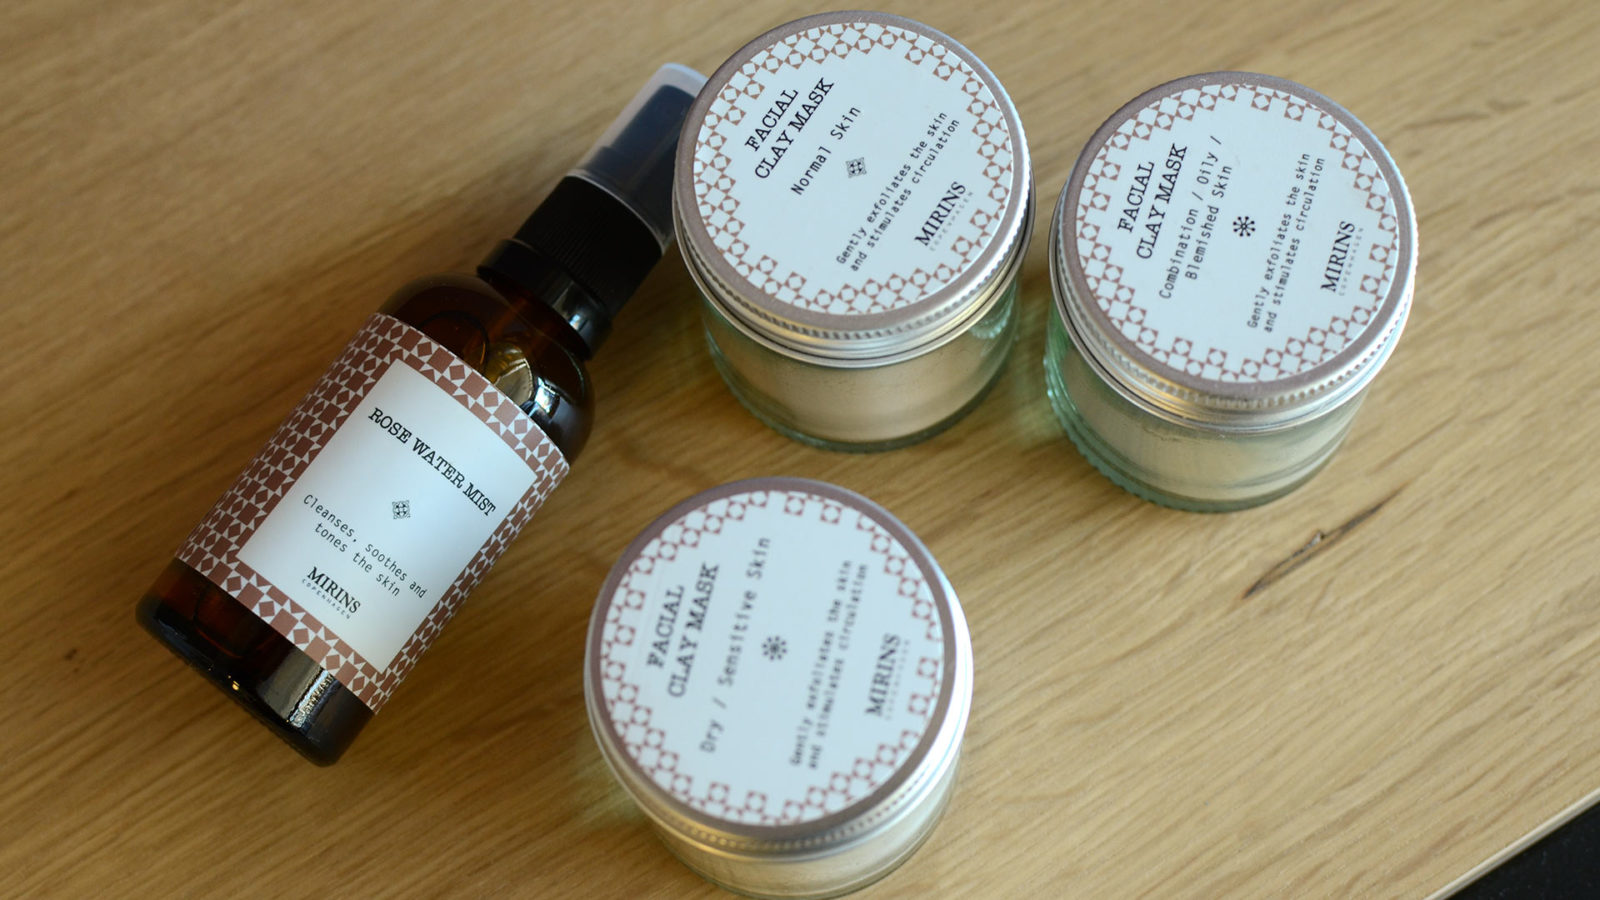 mirins-rose-water-and-clay-face-masks